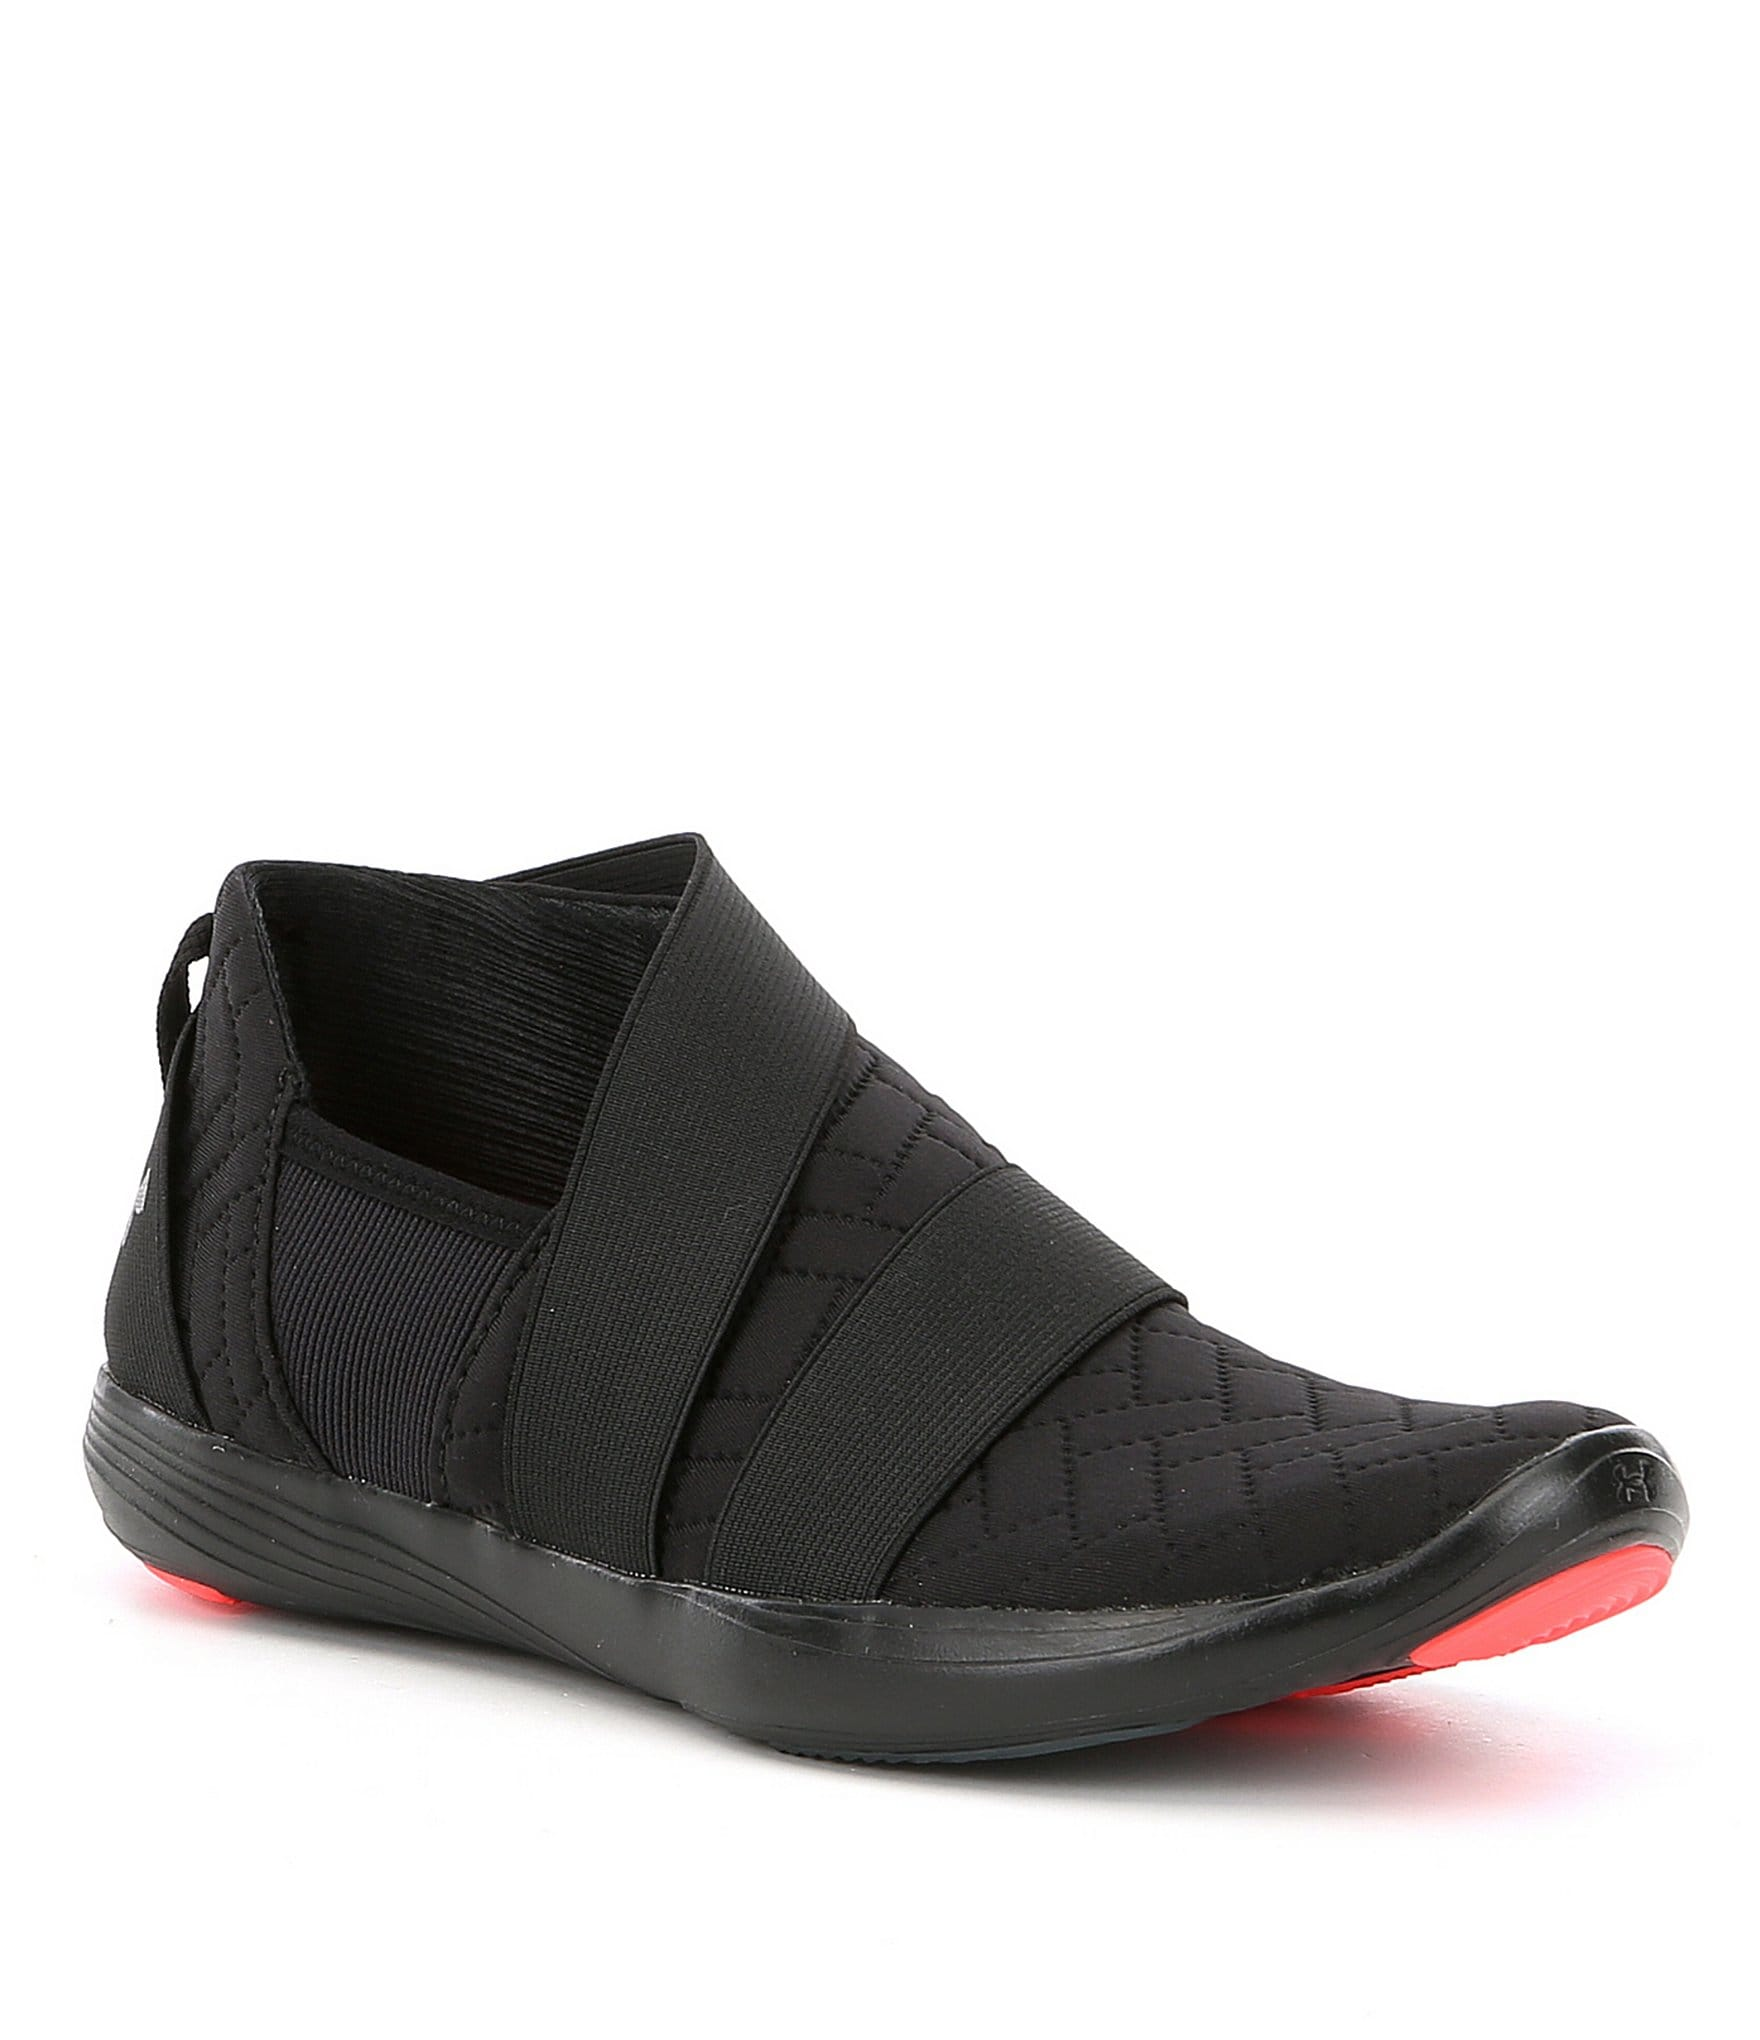 under armor slip on shoes